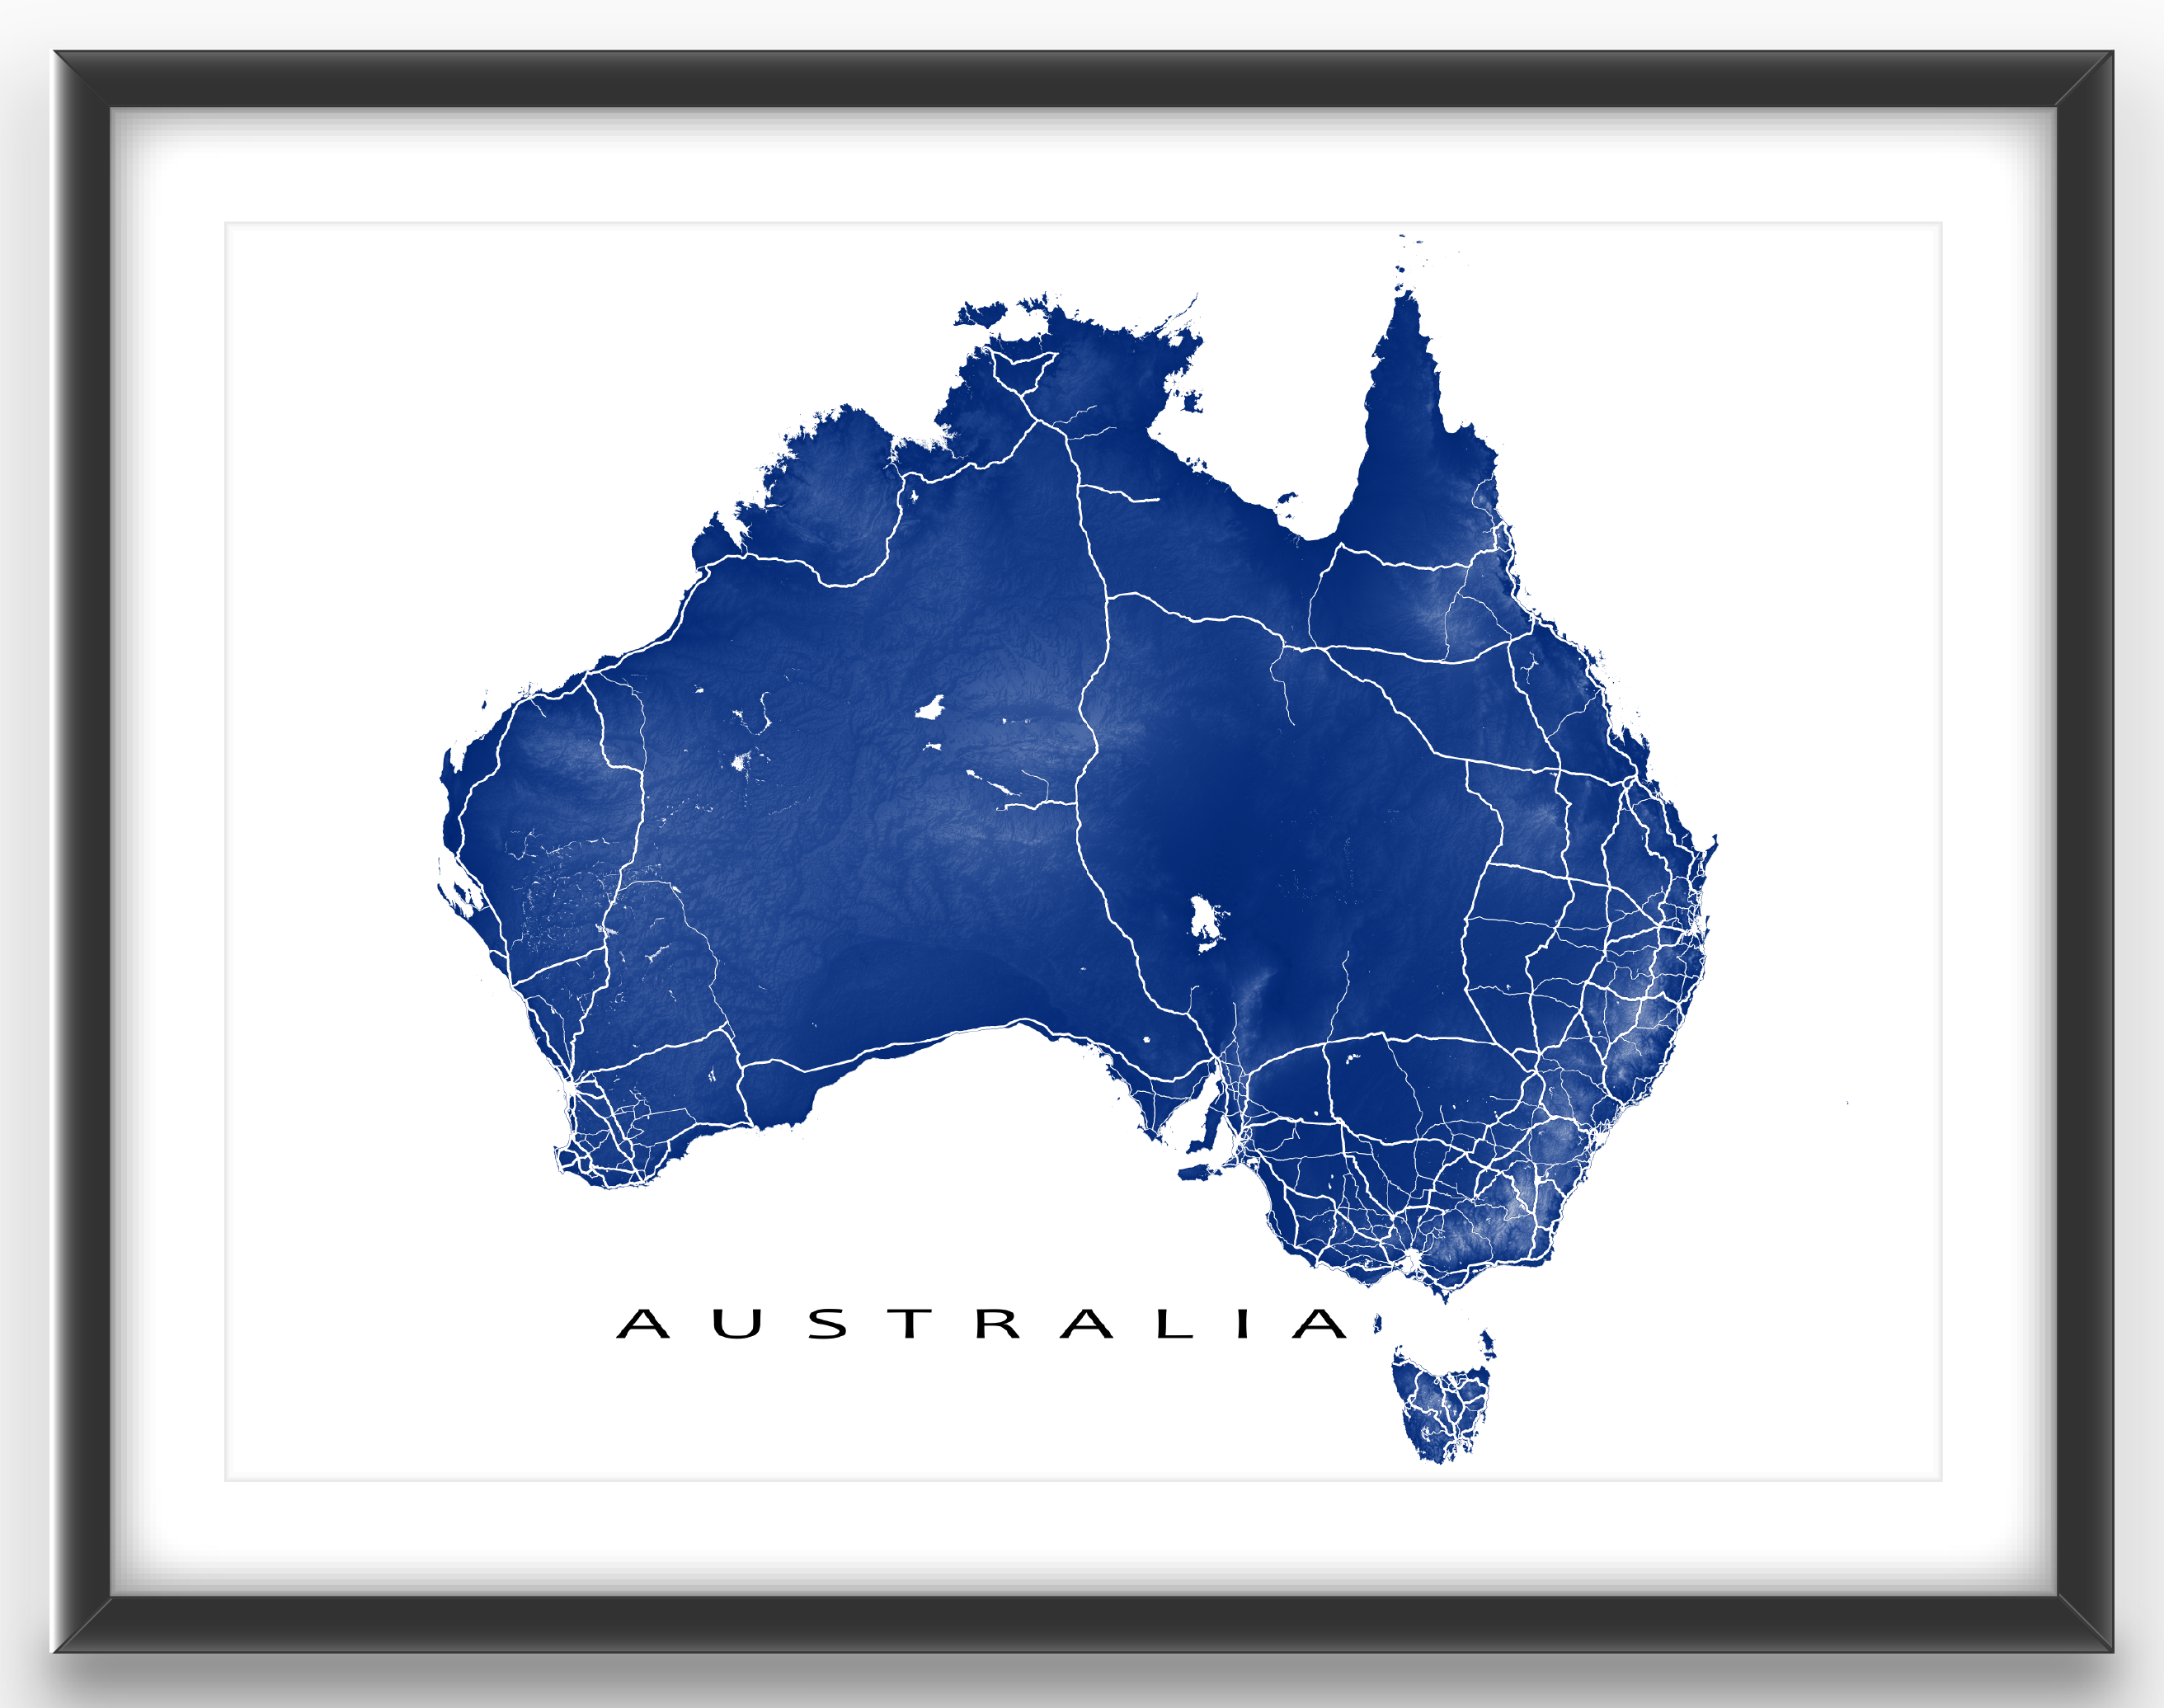 australia map print featuring the amazing country of australia and its fabulous landscape lighter areas